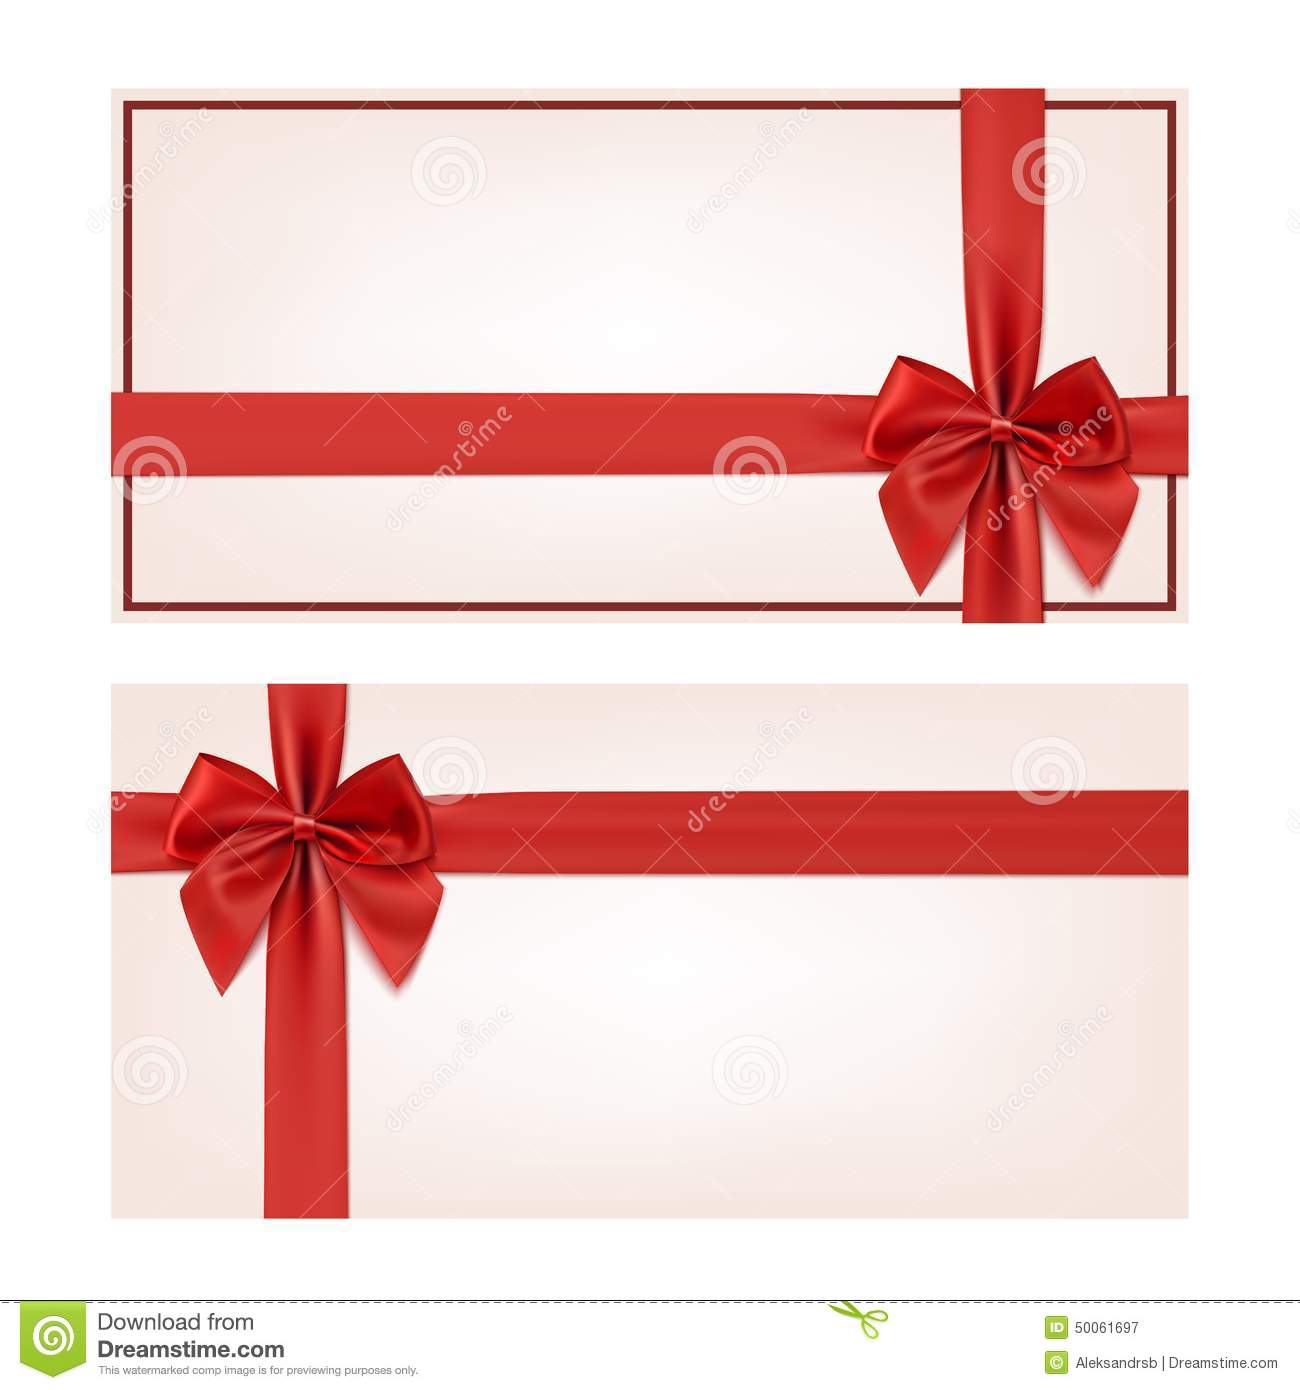 Gift Voucher Template With Red Ribbon And A Bow Stock